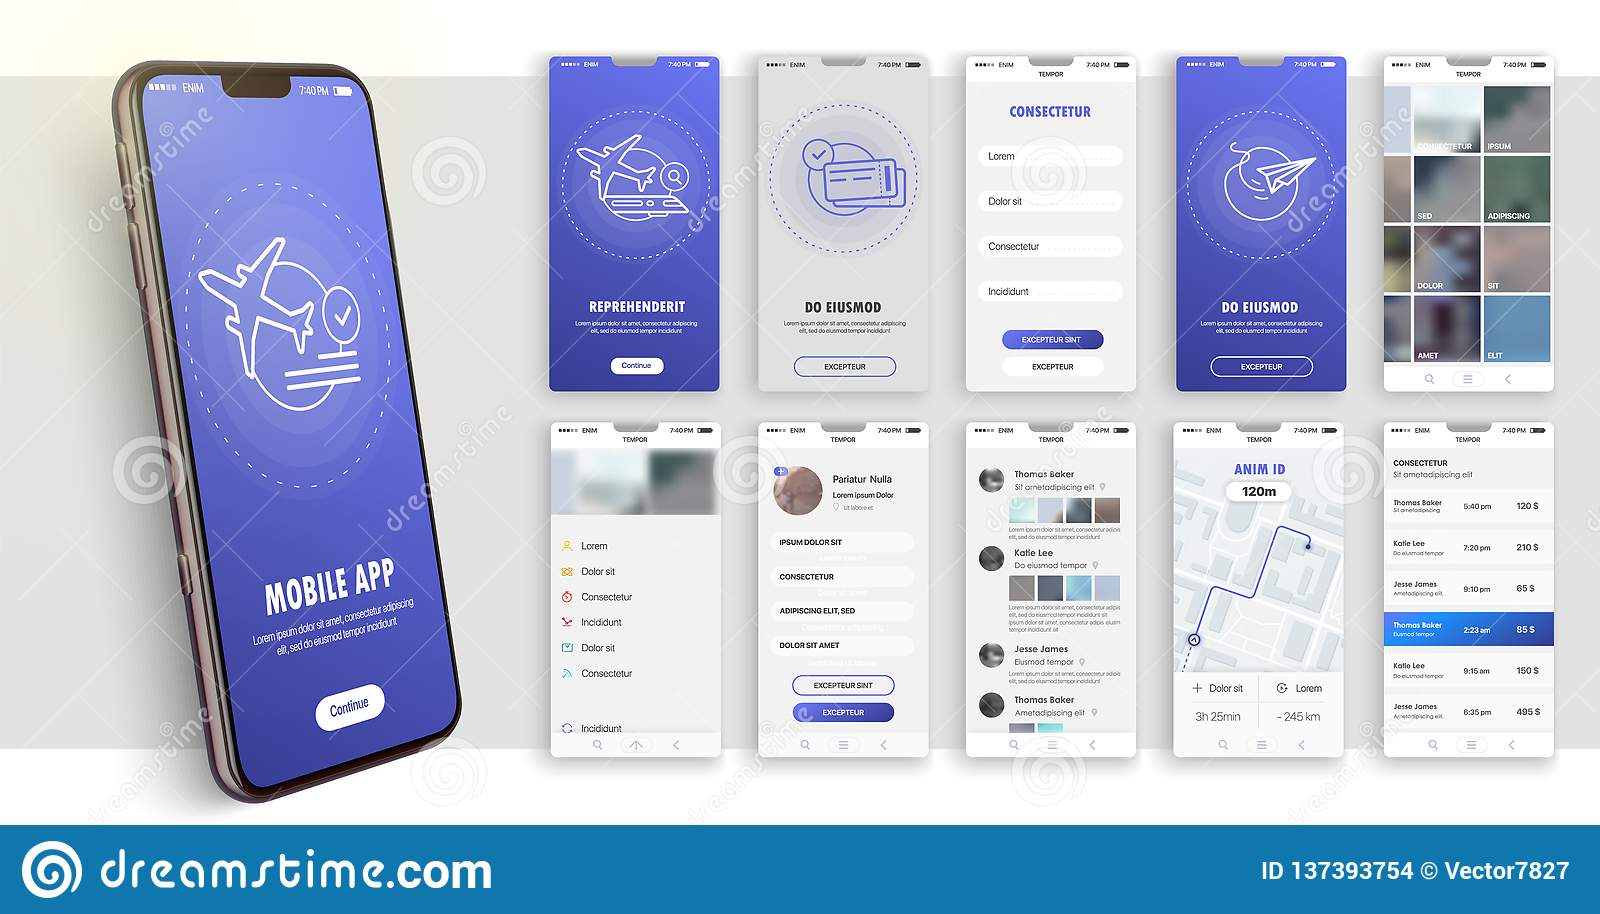 Design of the mobile application, UI, UX. A set of GUI screens with login and password input.